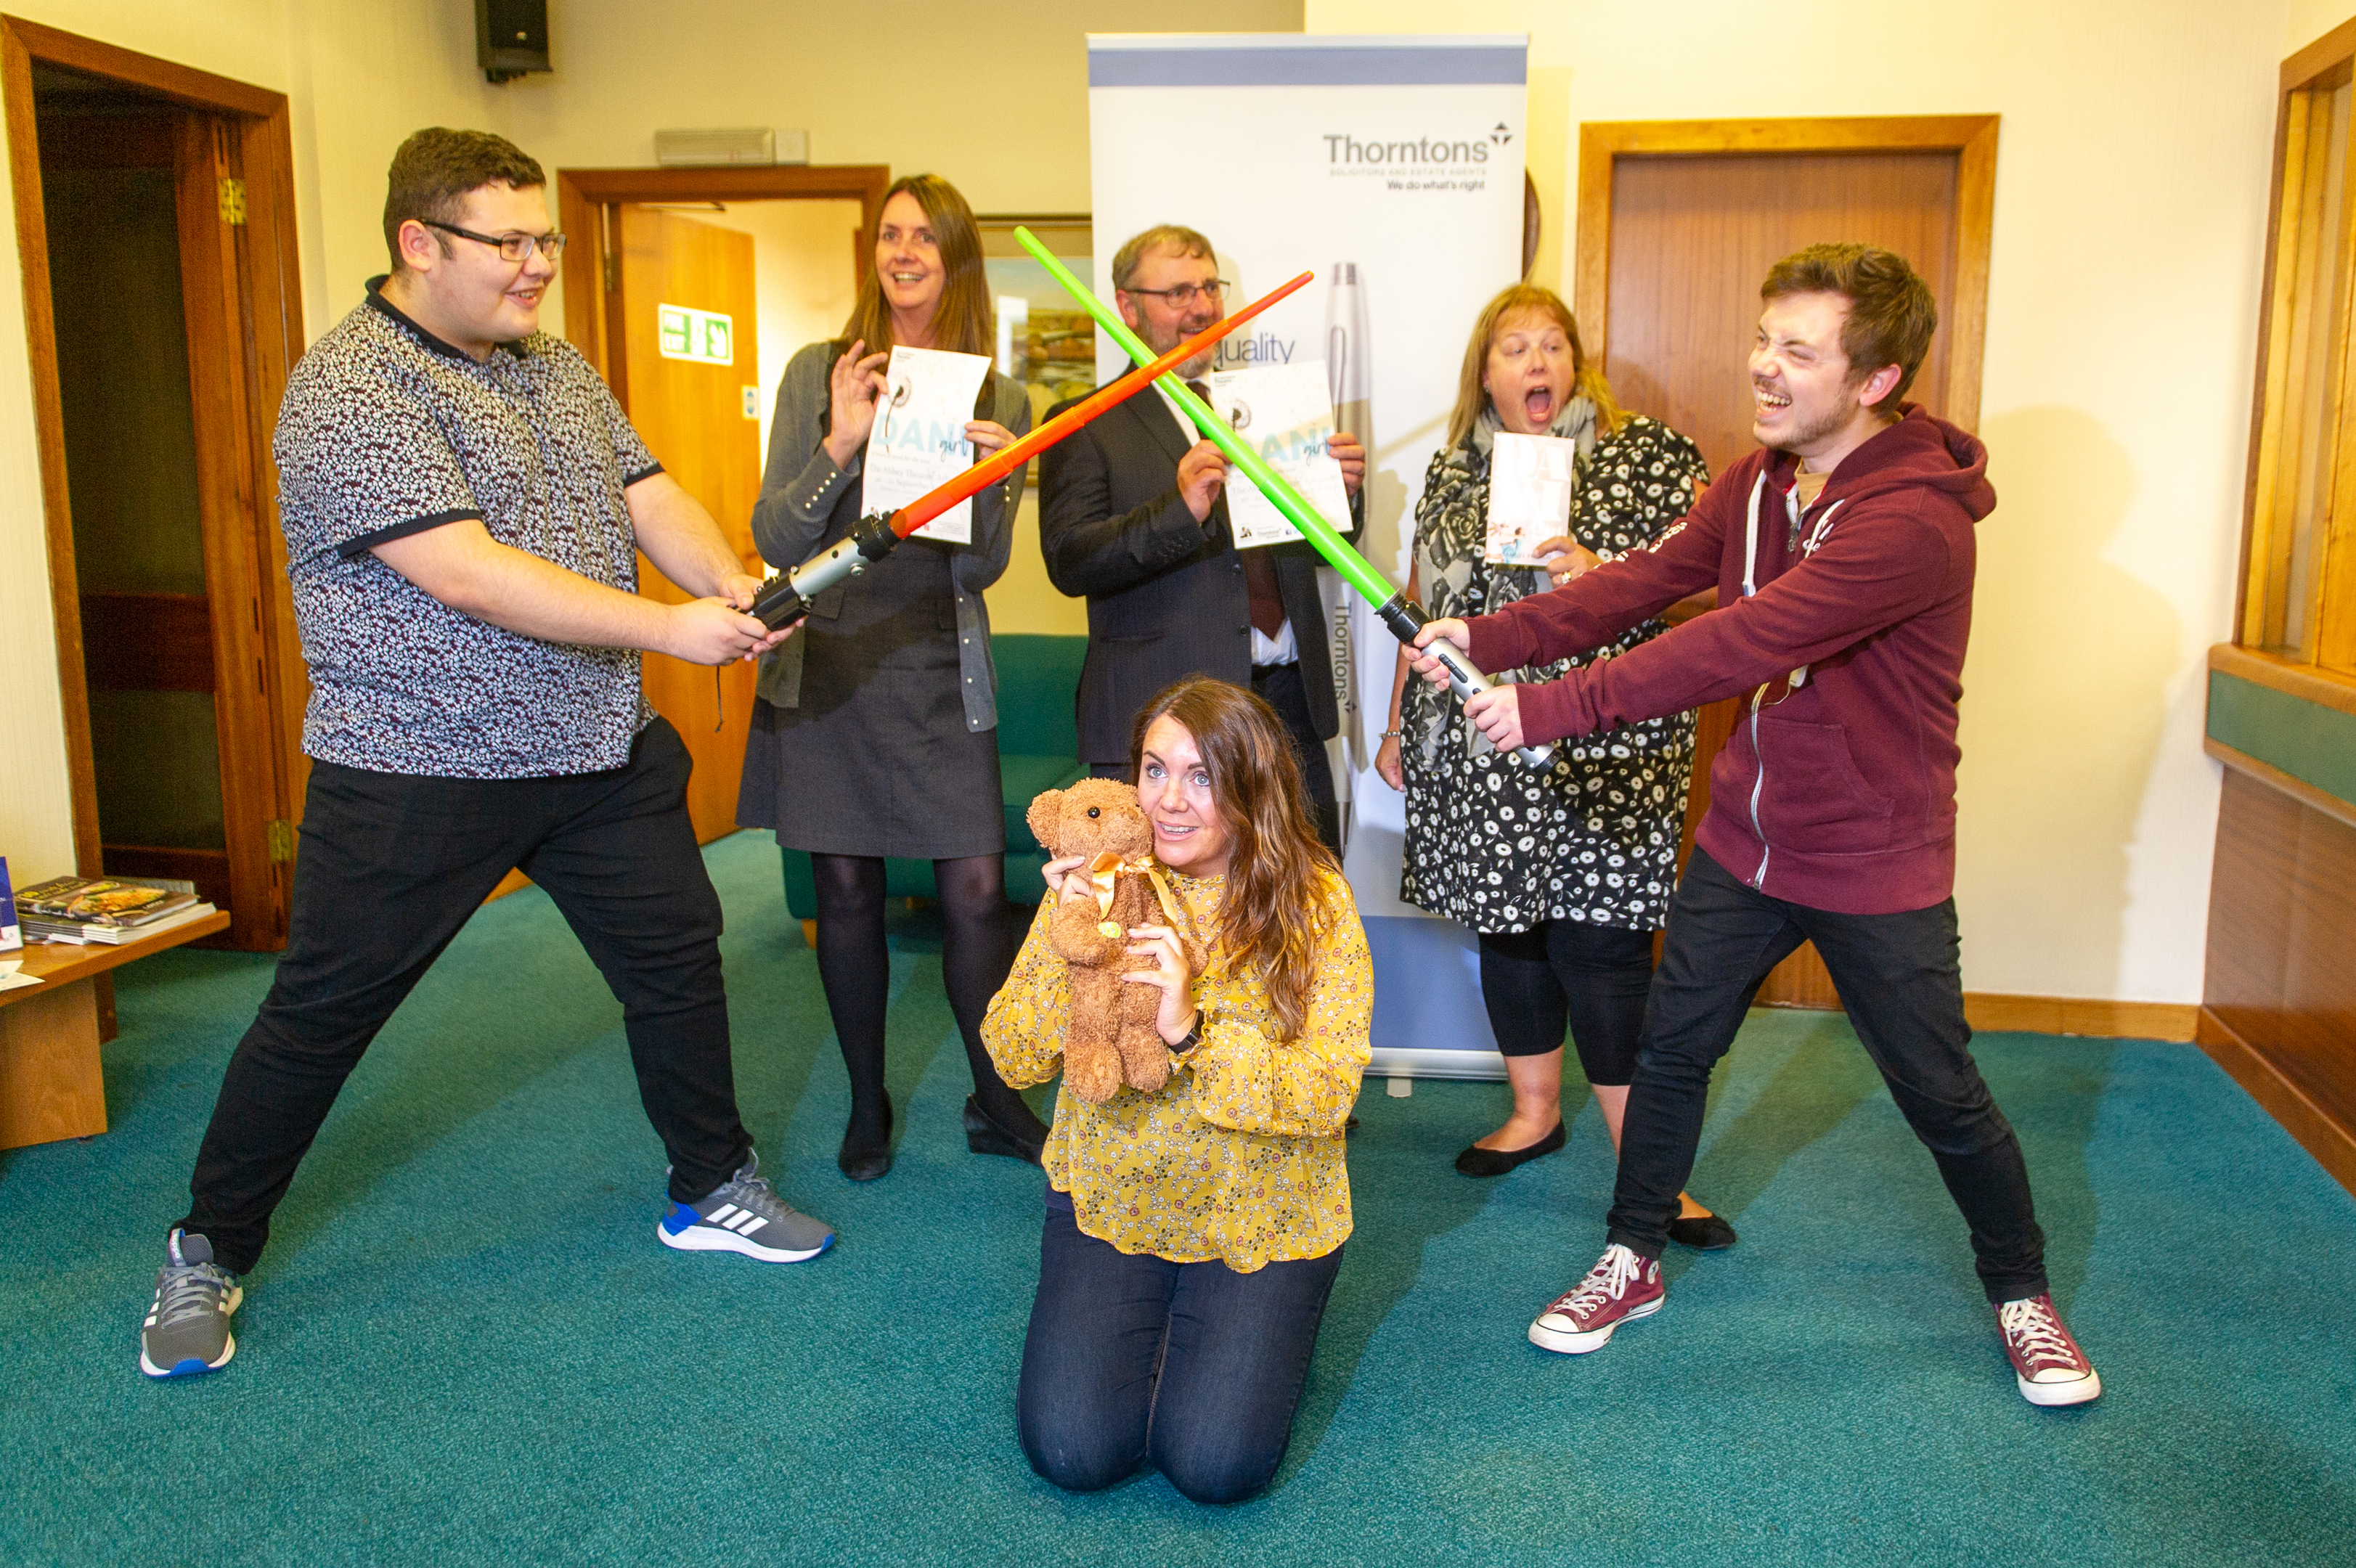 Some of the new theatre company members with representatives from main sponsors Thorntons Solicitors - back l to r - Sandra Sutherland and David Mathieson (Thorntons WS) and Janet Irving - front - Blair Ruxton, Heidi Cathro with 'Mr Fritz' and Ruaridh Mathieson.